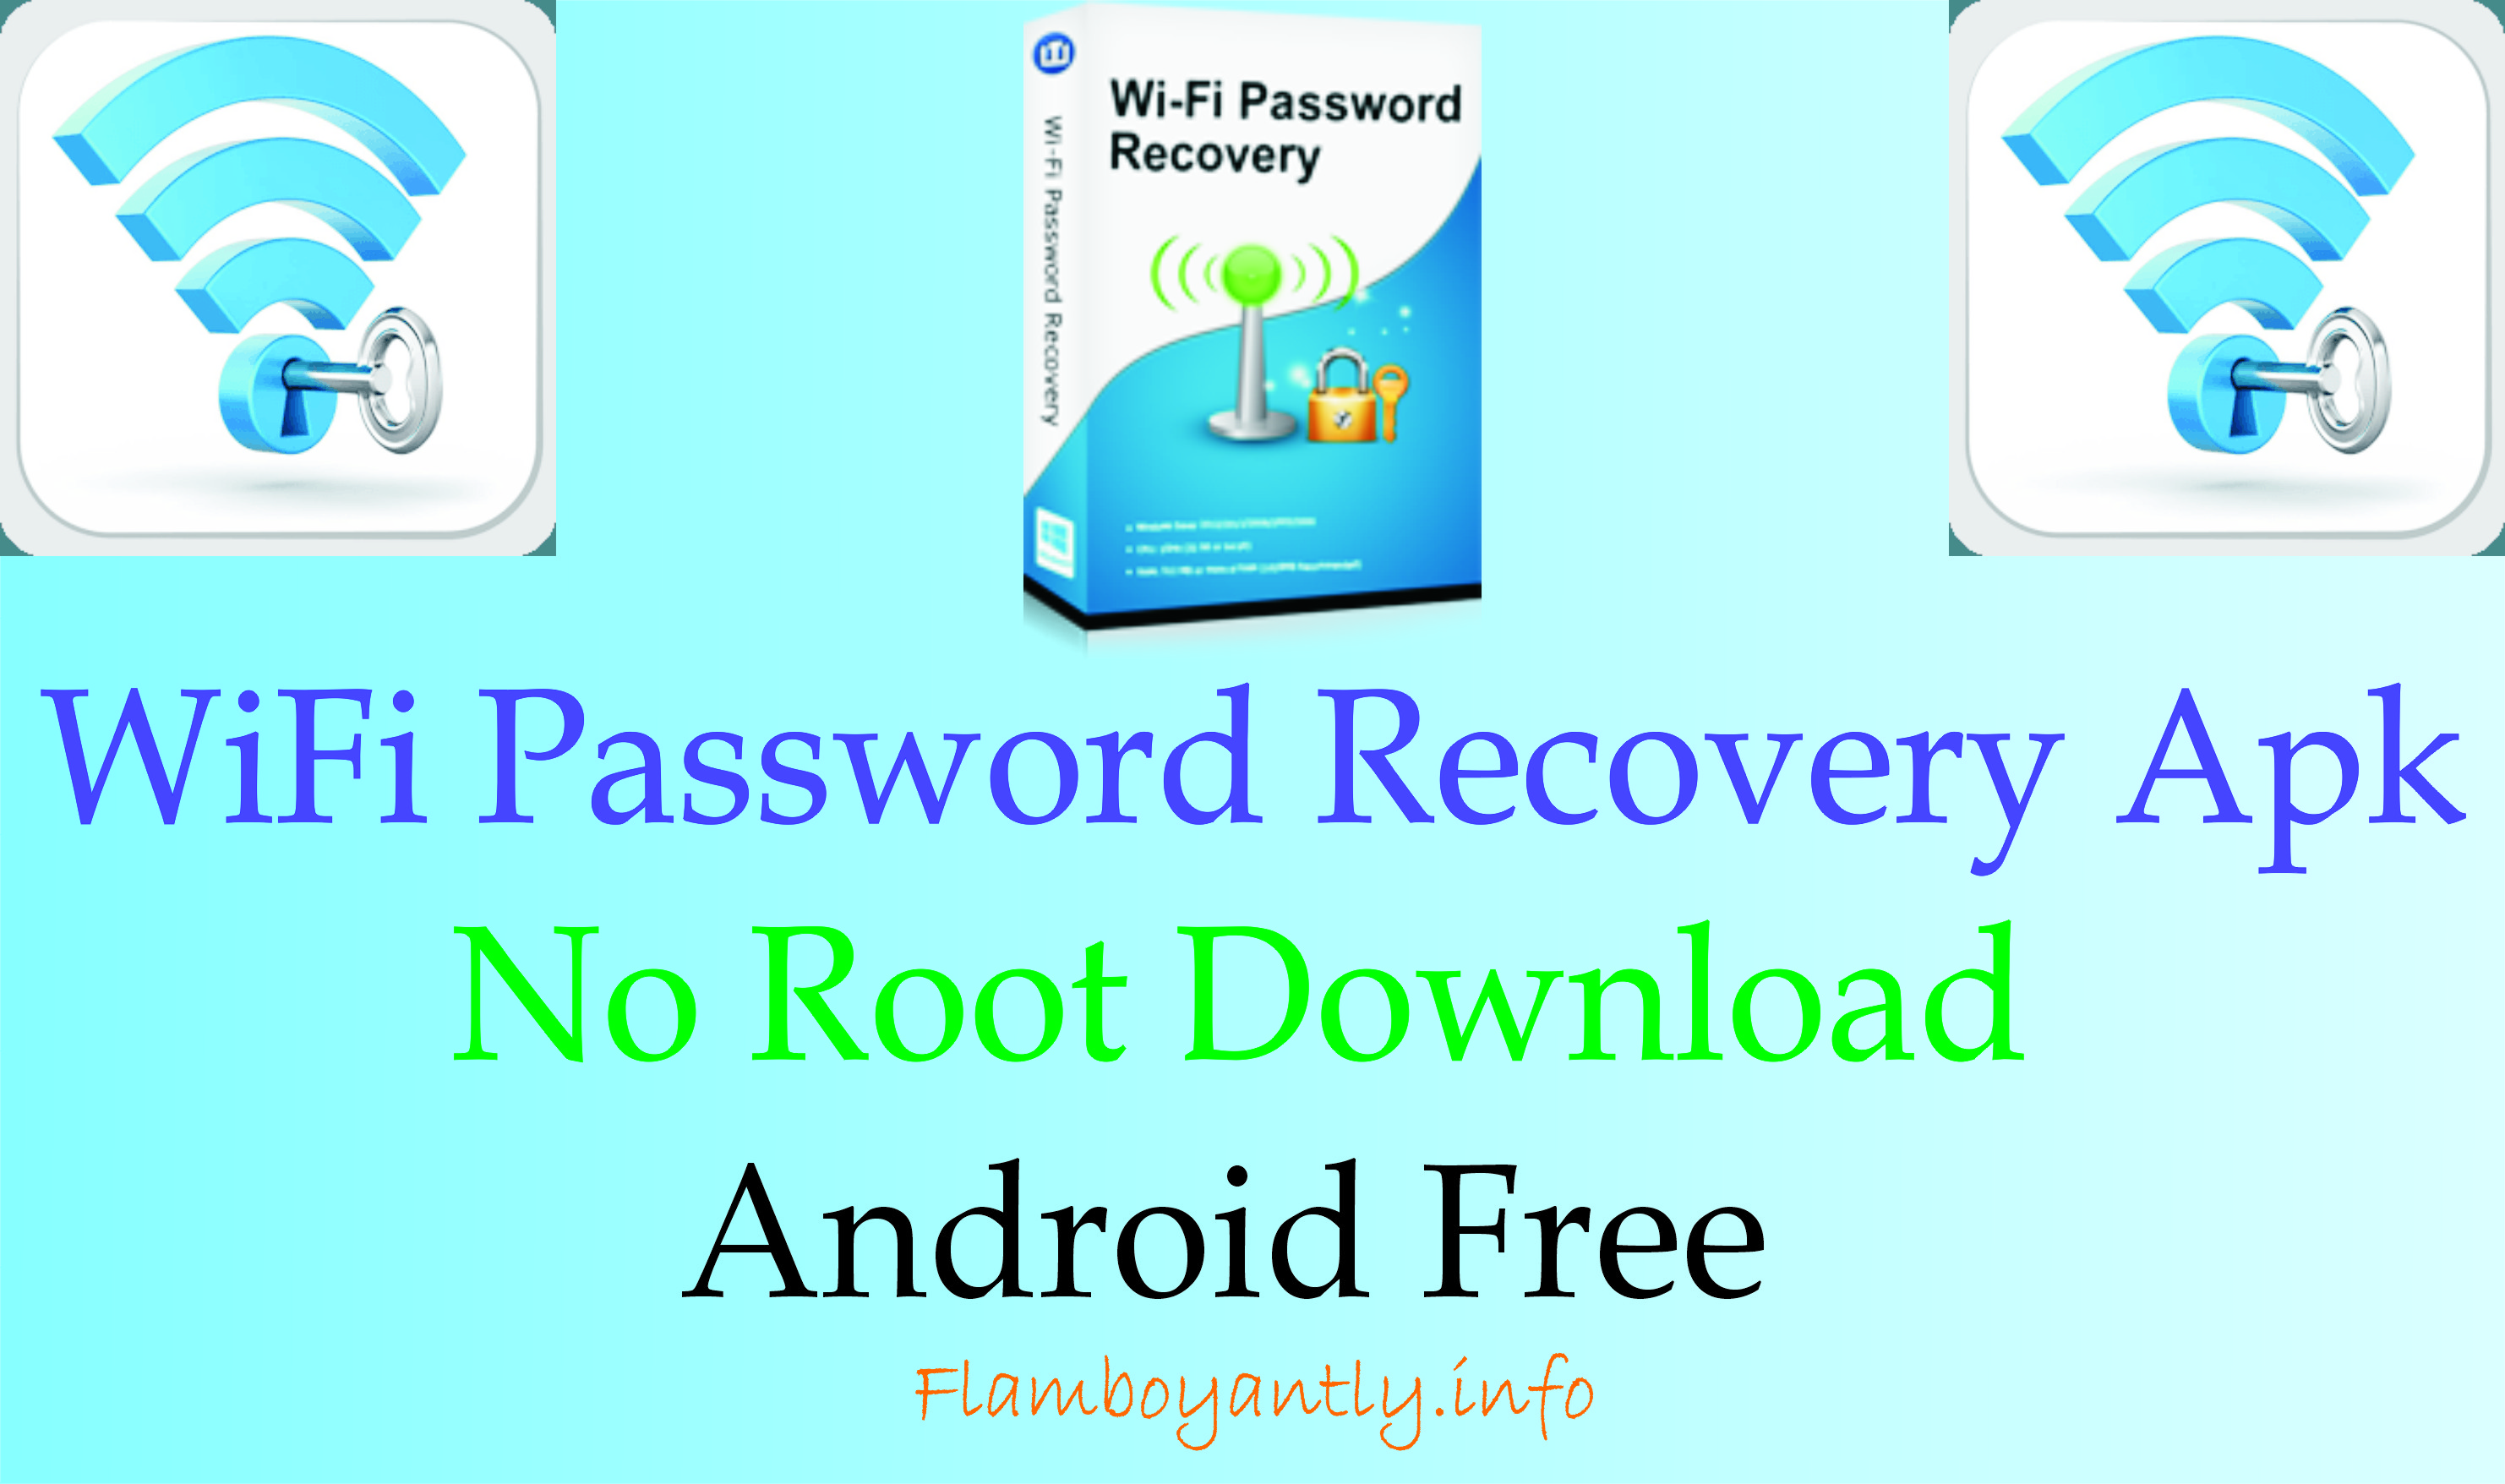 WiFi Password Recovery Apk No Root Download Android Free